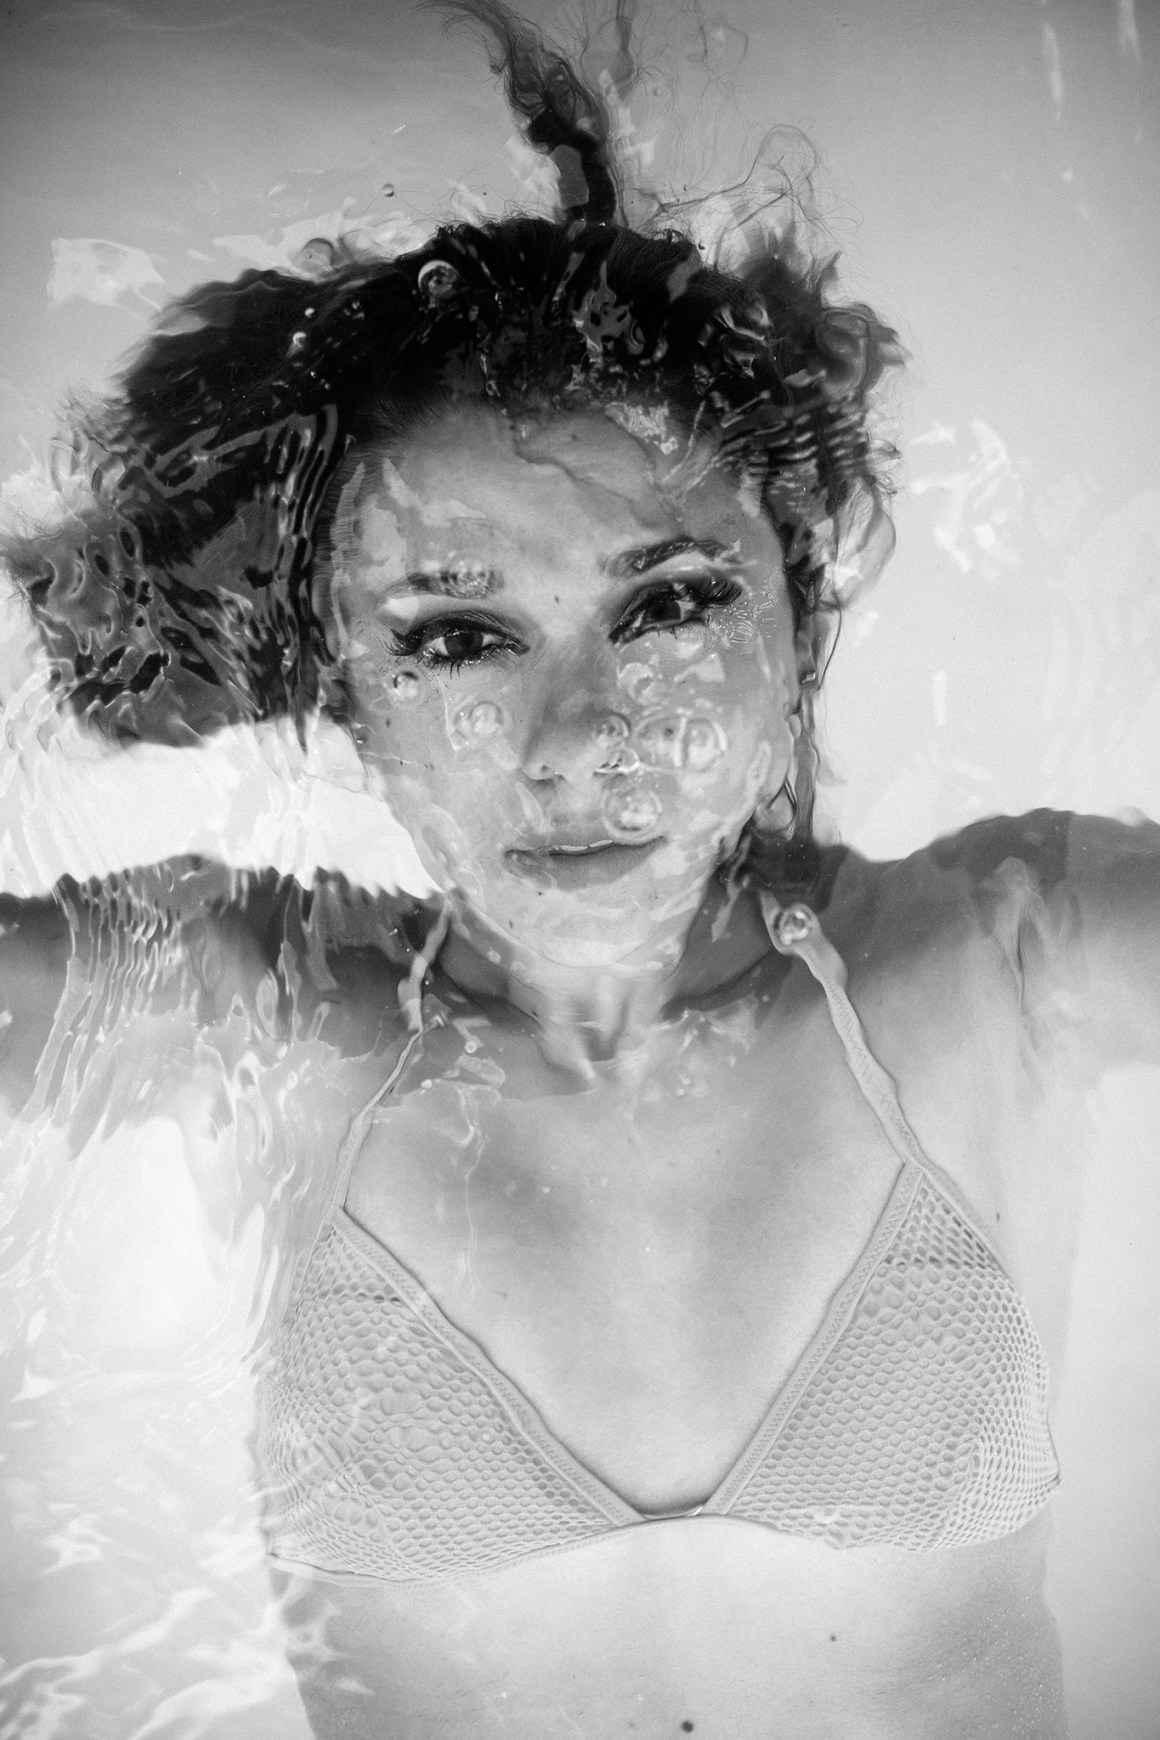 French Water We usually go big every year with mermaid portraits and this was from one of those shoots but it was a quieter moment with the B-Camera to find an enduring portrait